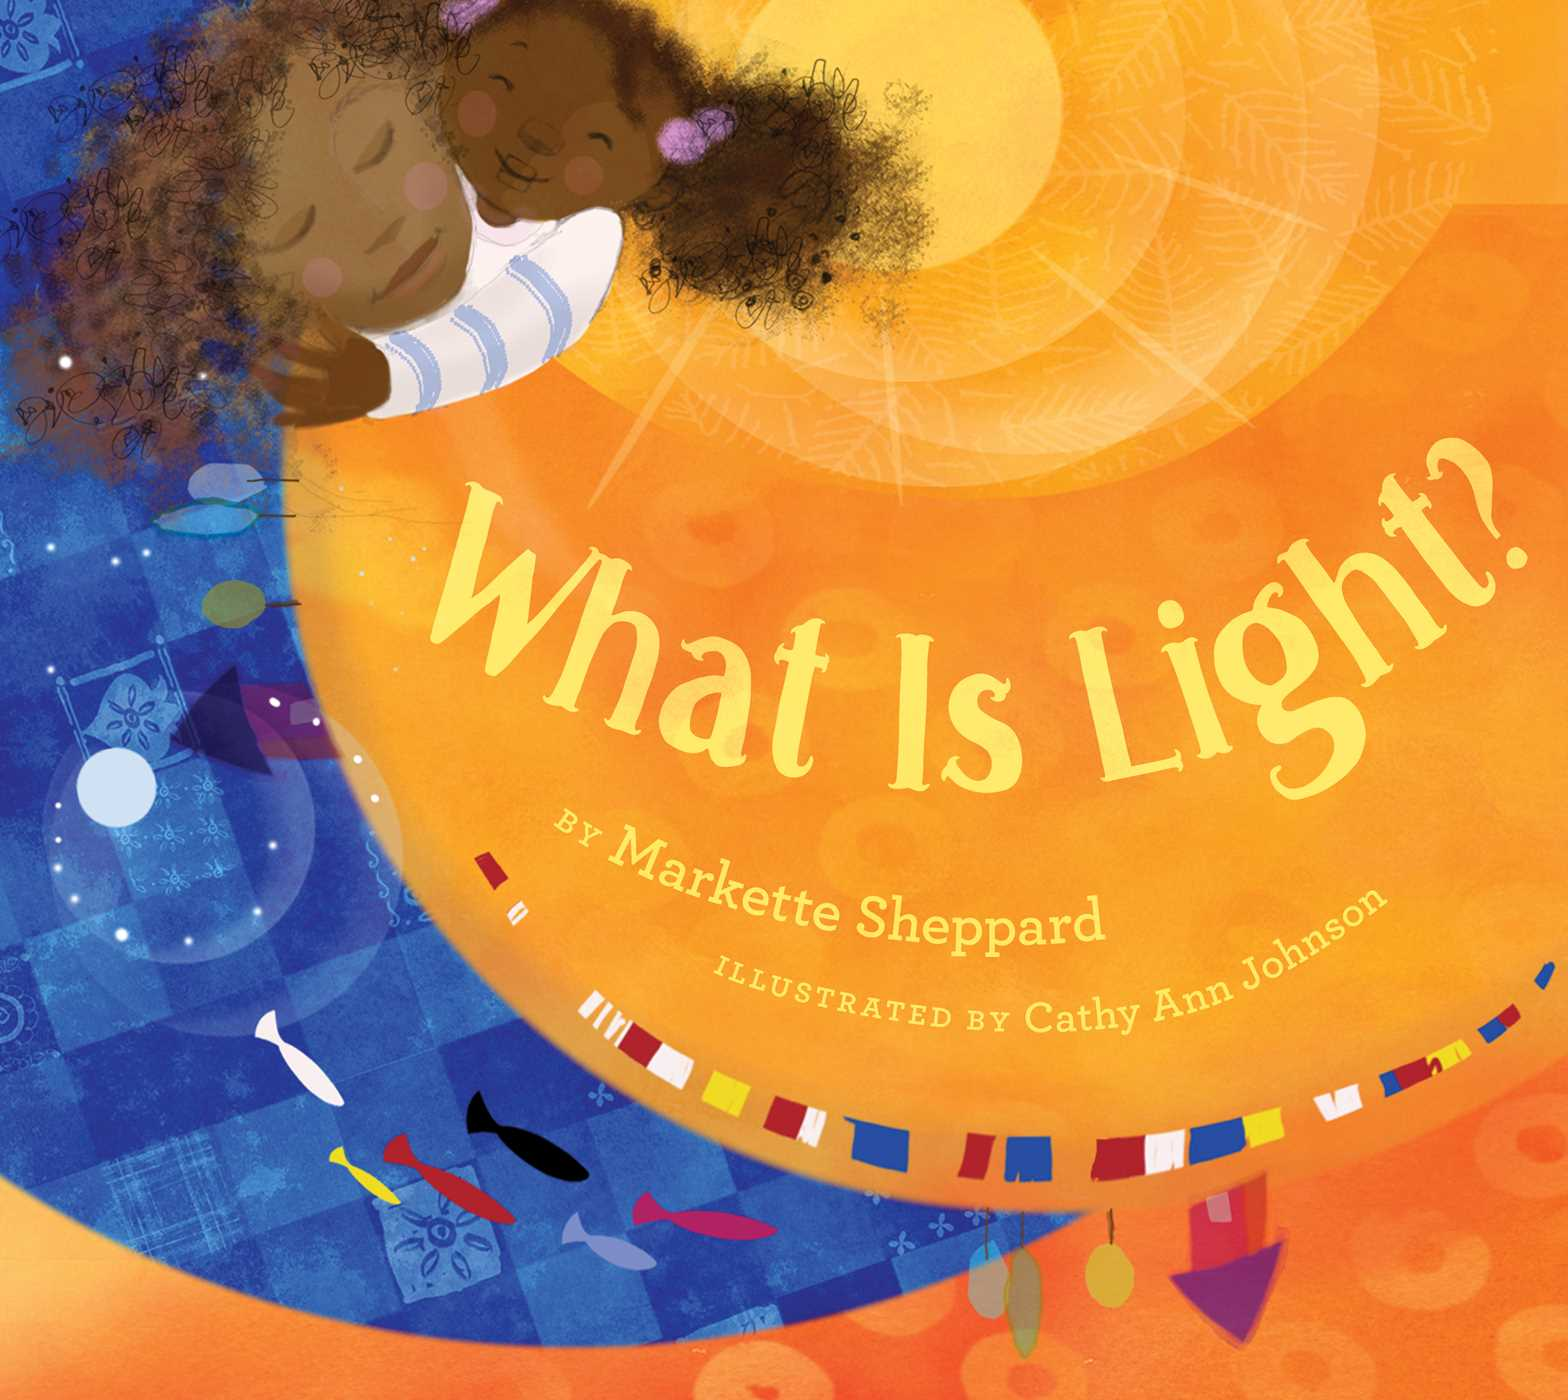 What Is Light? | Book by Markette Sheppard, Cathy Ann Johnson | Official Publisher Page | Simon & Schuster